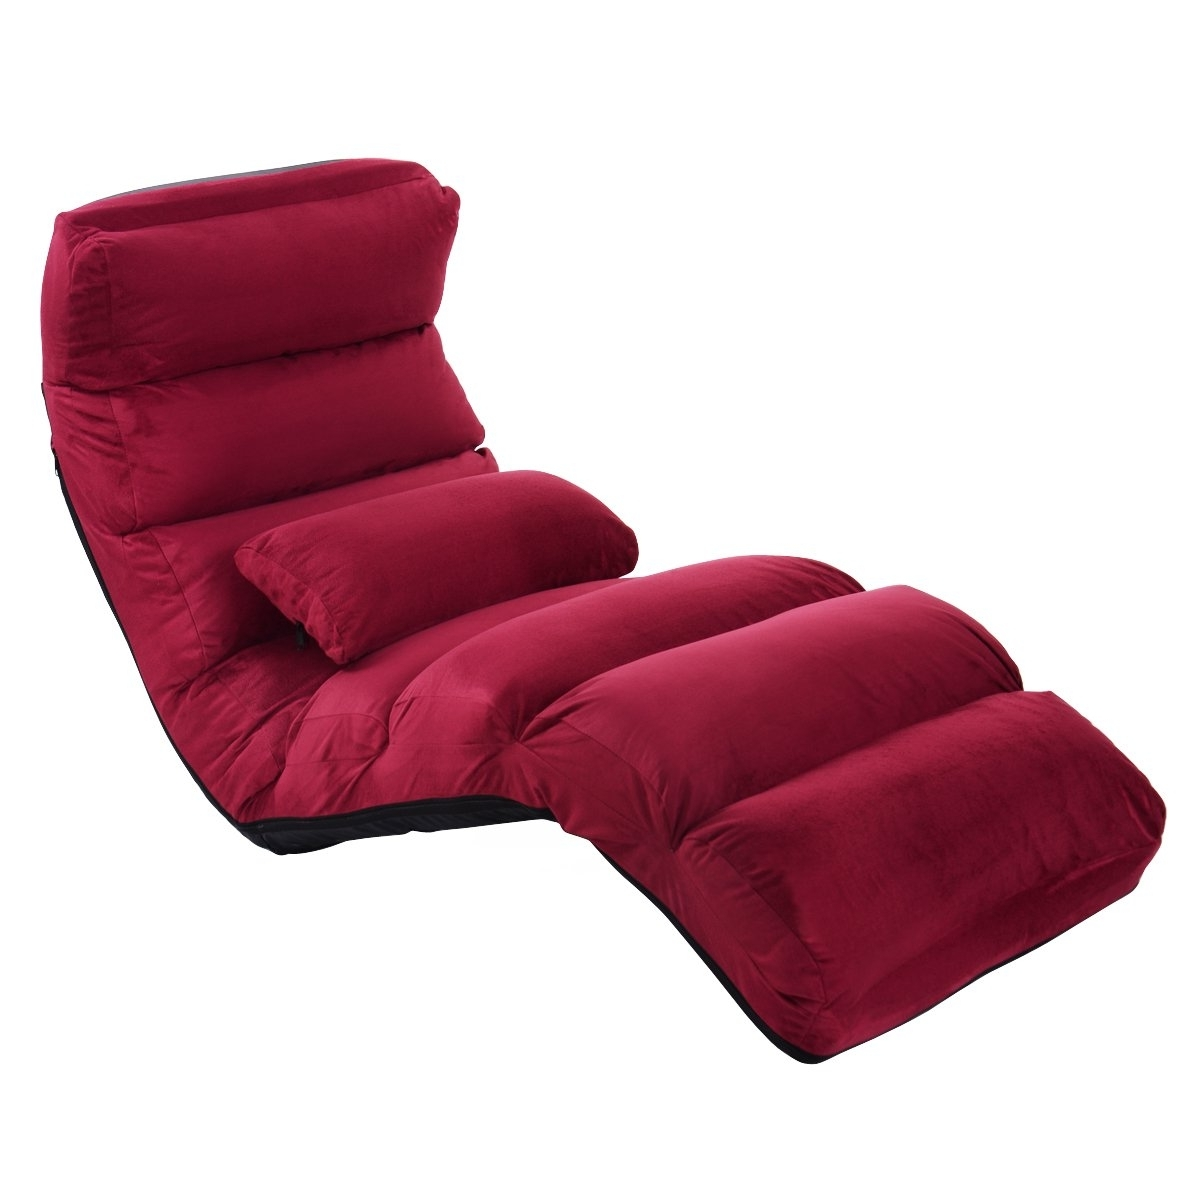 Lazy Sofa Chairs With Regard To Most Recent Cheap Lazy Chair Ikea, Find Lazy Chair Ikea Deals On Line At (View 7 of 15)